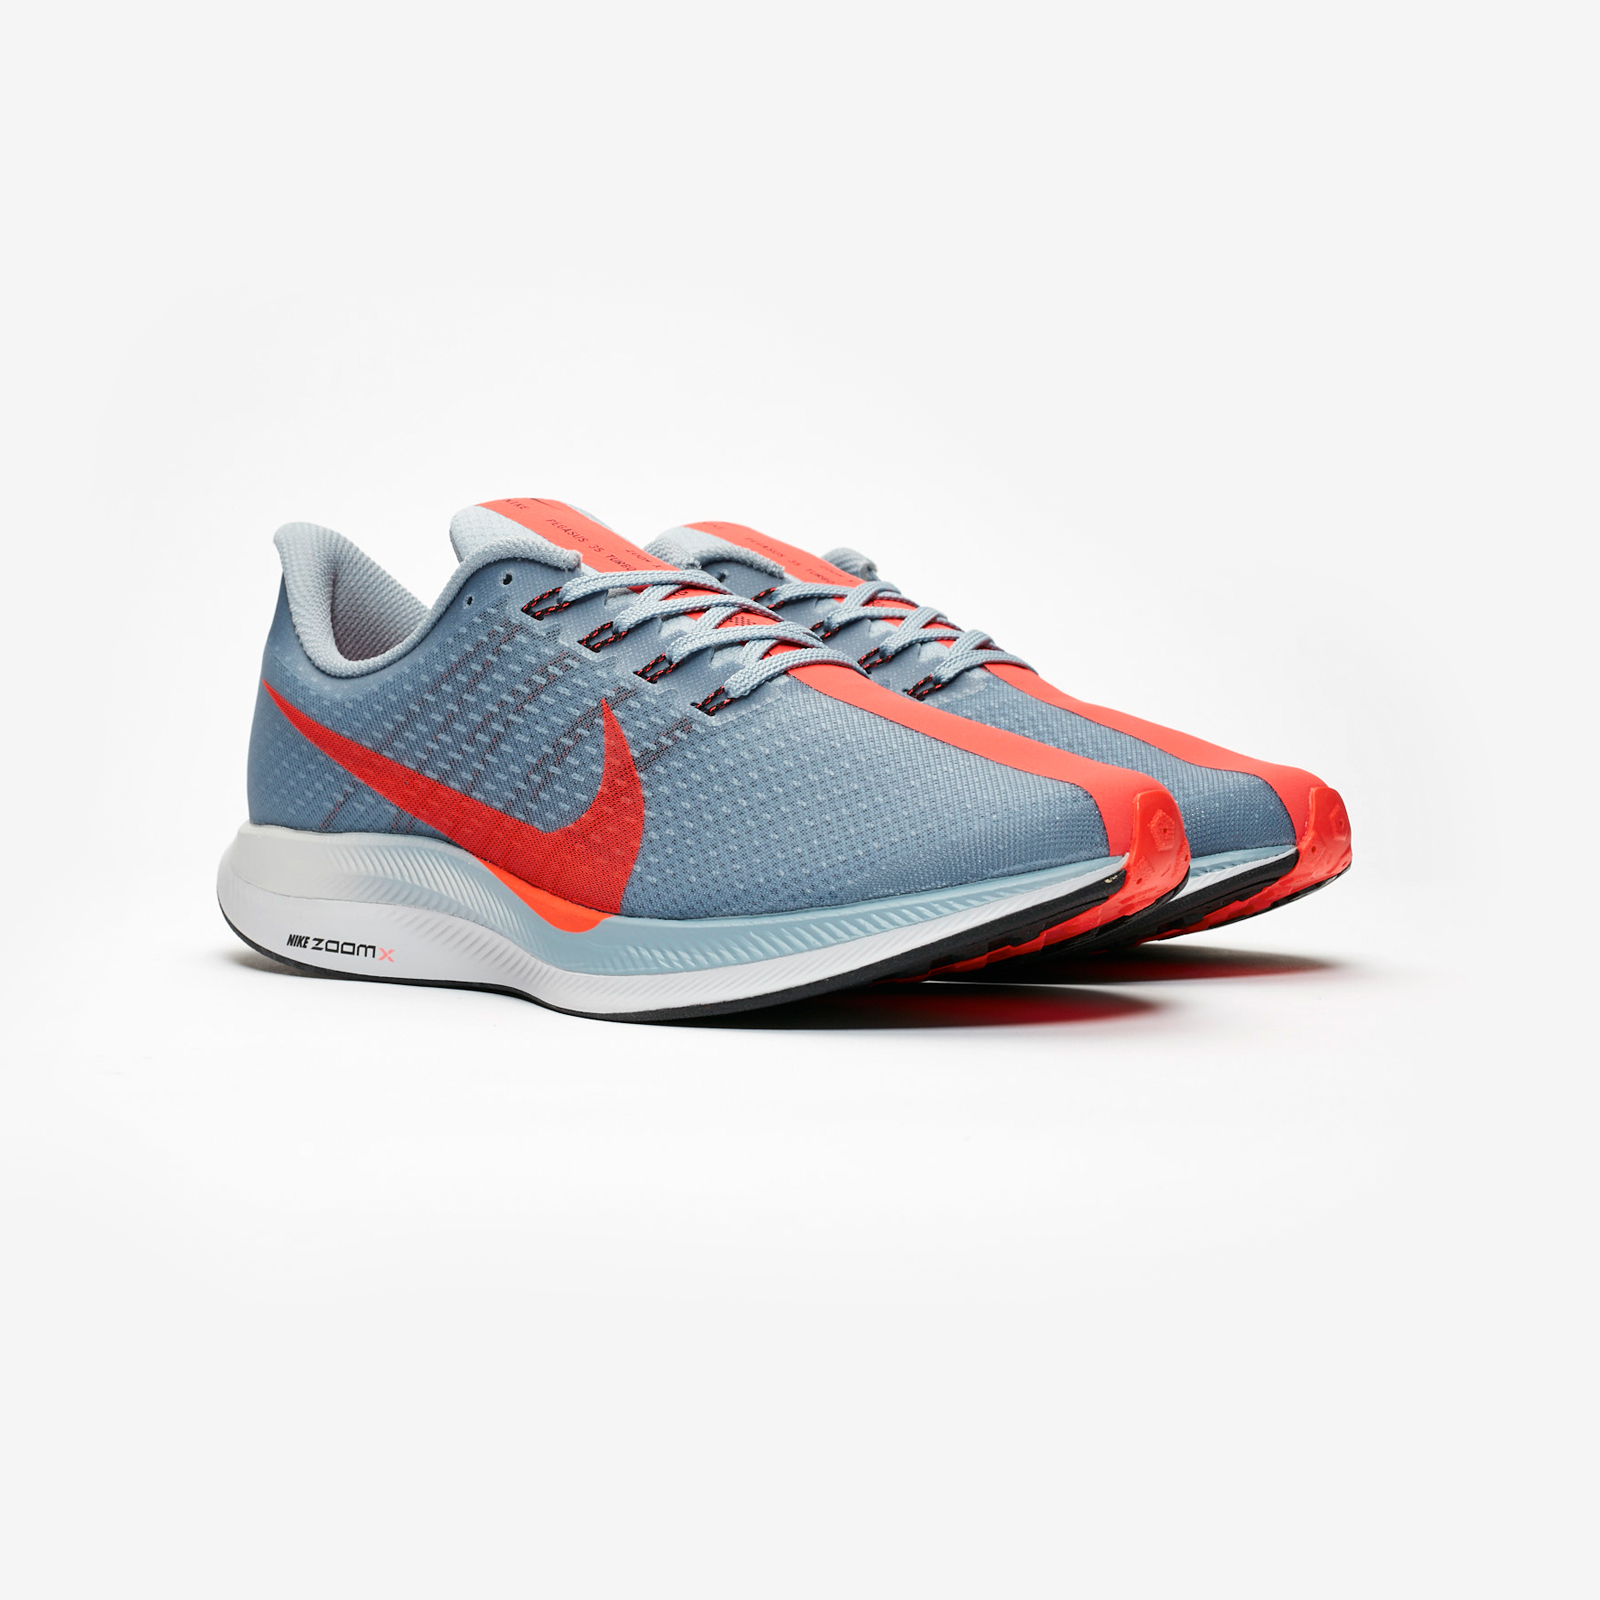 various colors 41217 56d4e Nike Zoom Pegasus 35 Turbo - Aj4114-402 - Sneakersnstuff ...